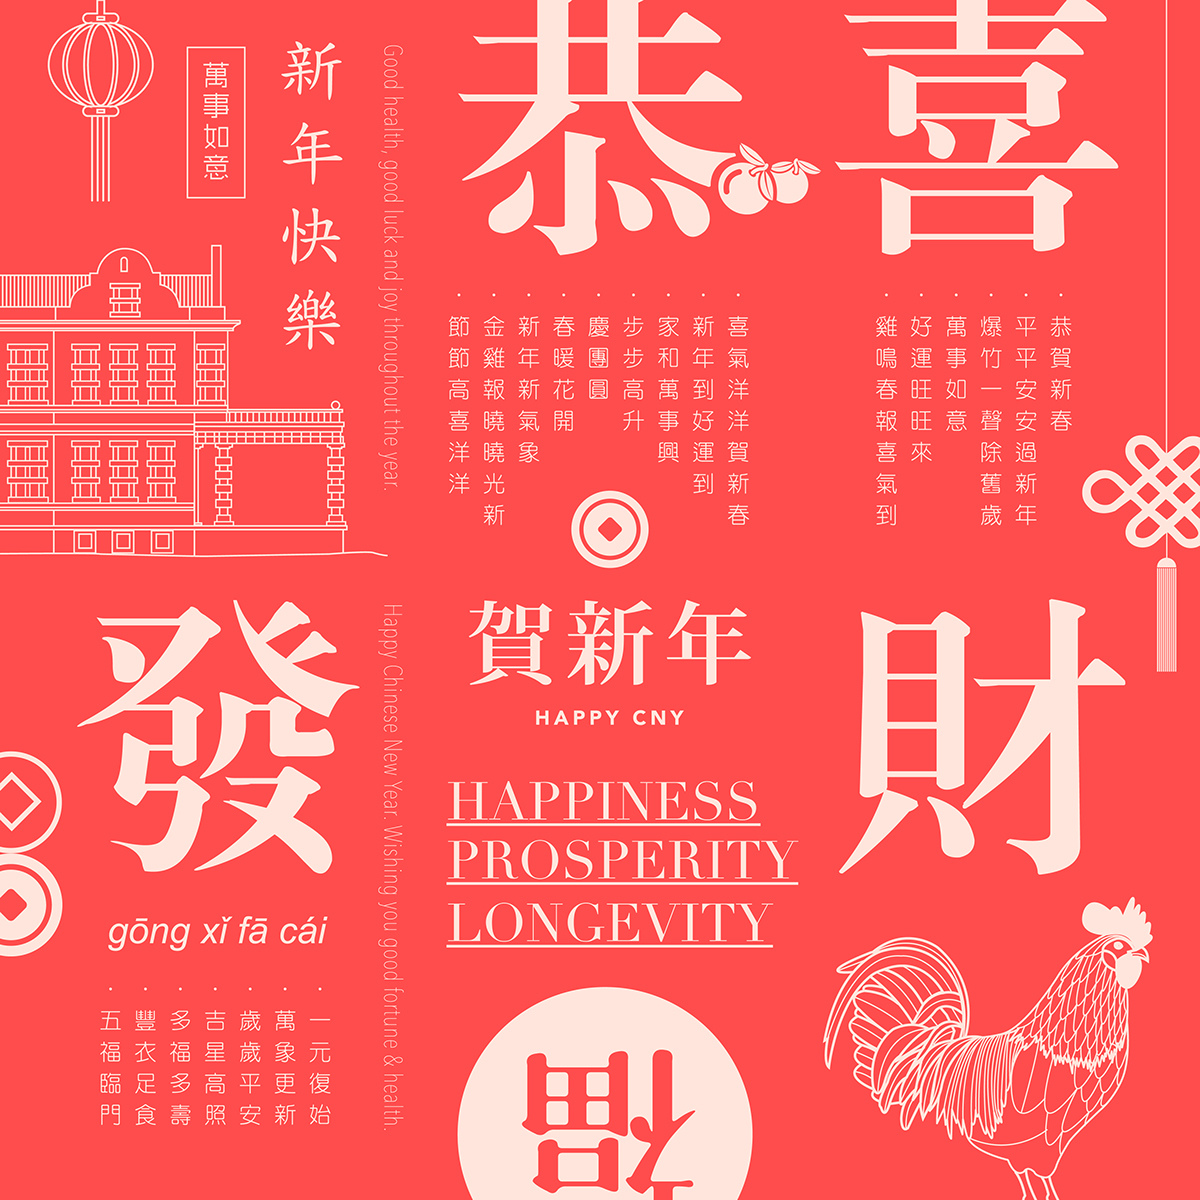 Cny greeting card design 2017 on behance cny greeting card design of 2017 year of rooster m4hsunfo